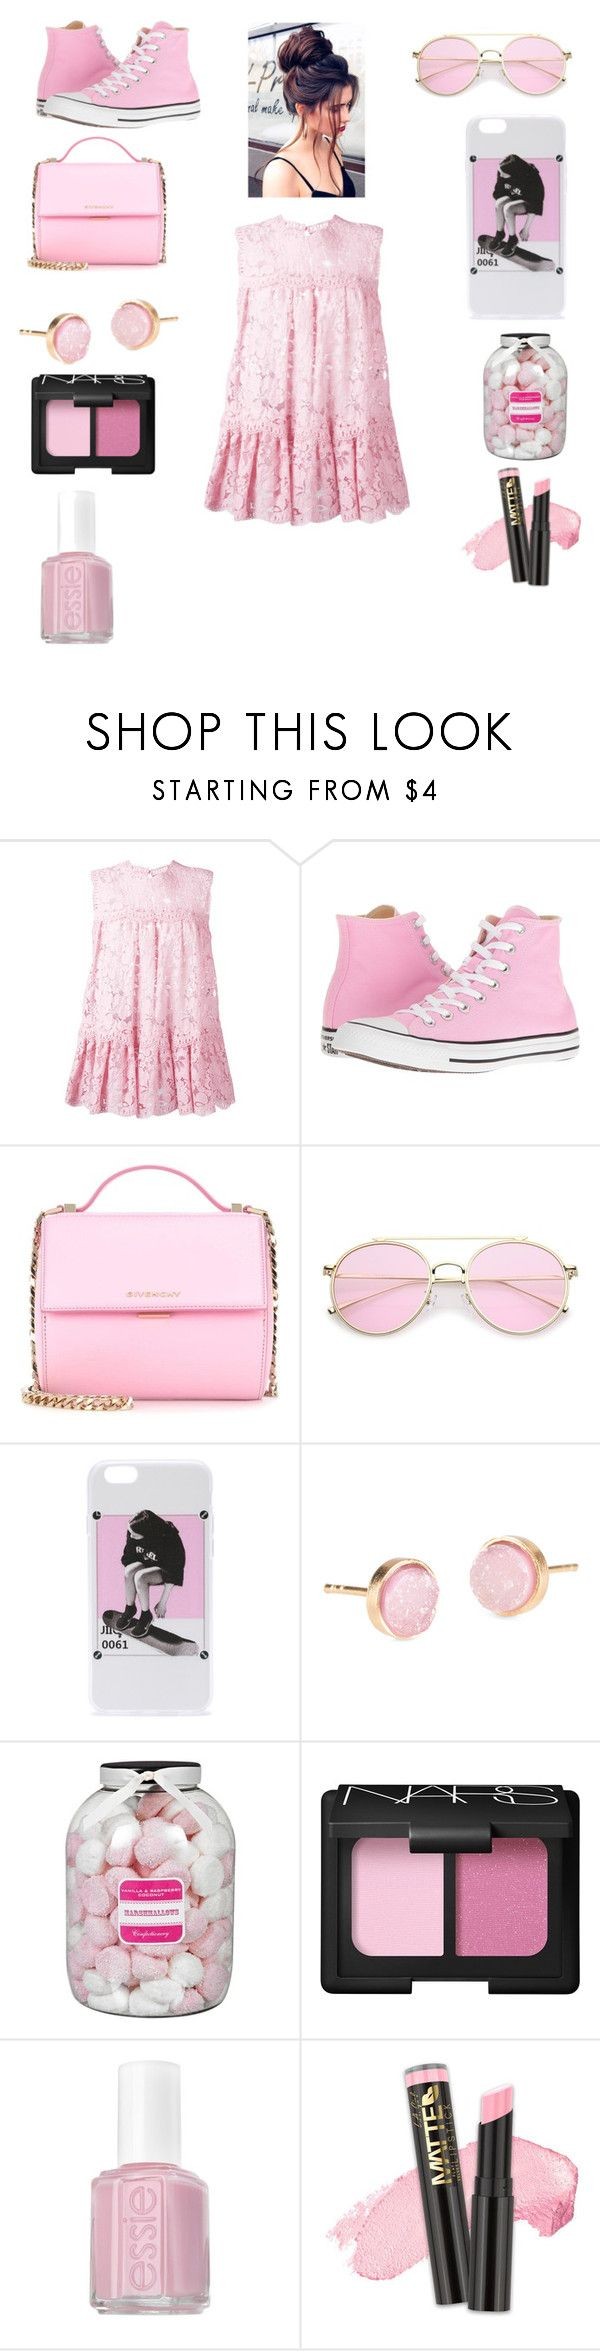 """""""color crush: pink"""" by kiwi01 ❤ liked on Polyvore featuring Alexander McQueen, Converse, Givenchy, Pernille Corydon, Farhi by Nicole Farhi, NARS Cosmetics, Essie and L.A. Girl"""